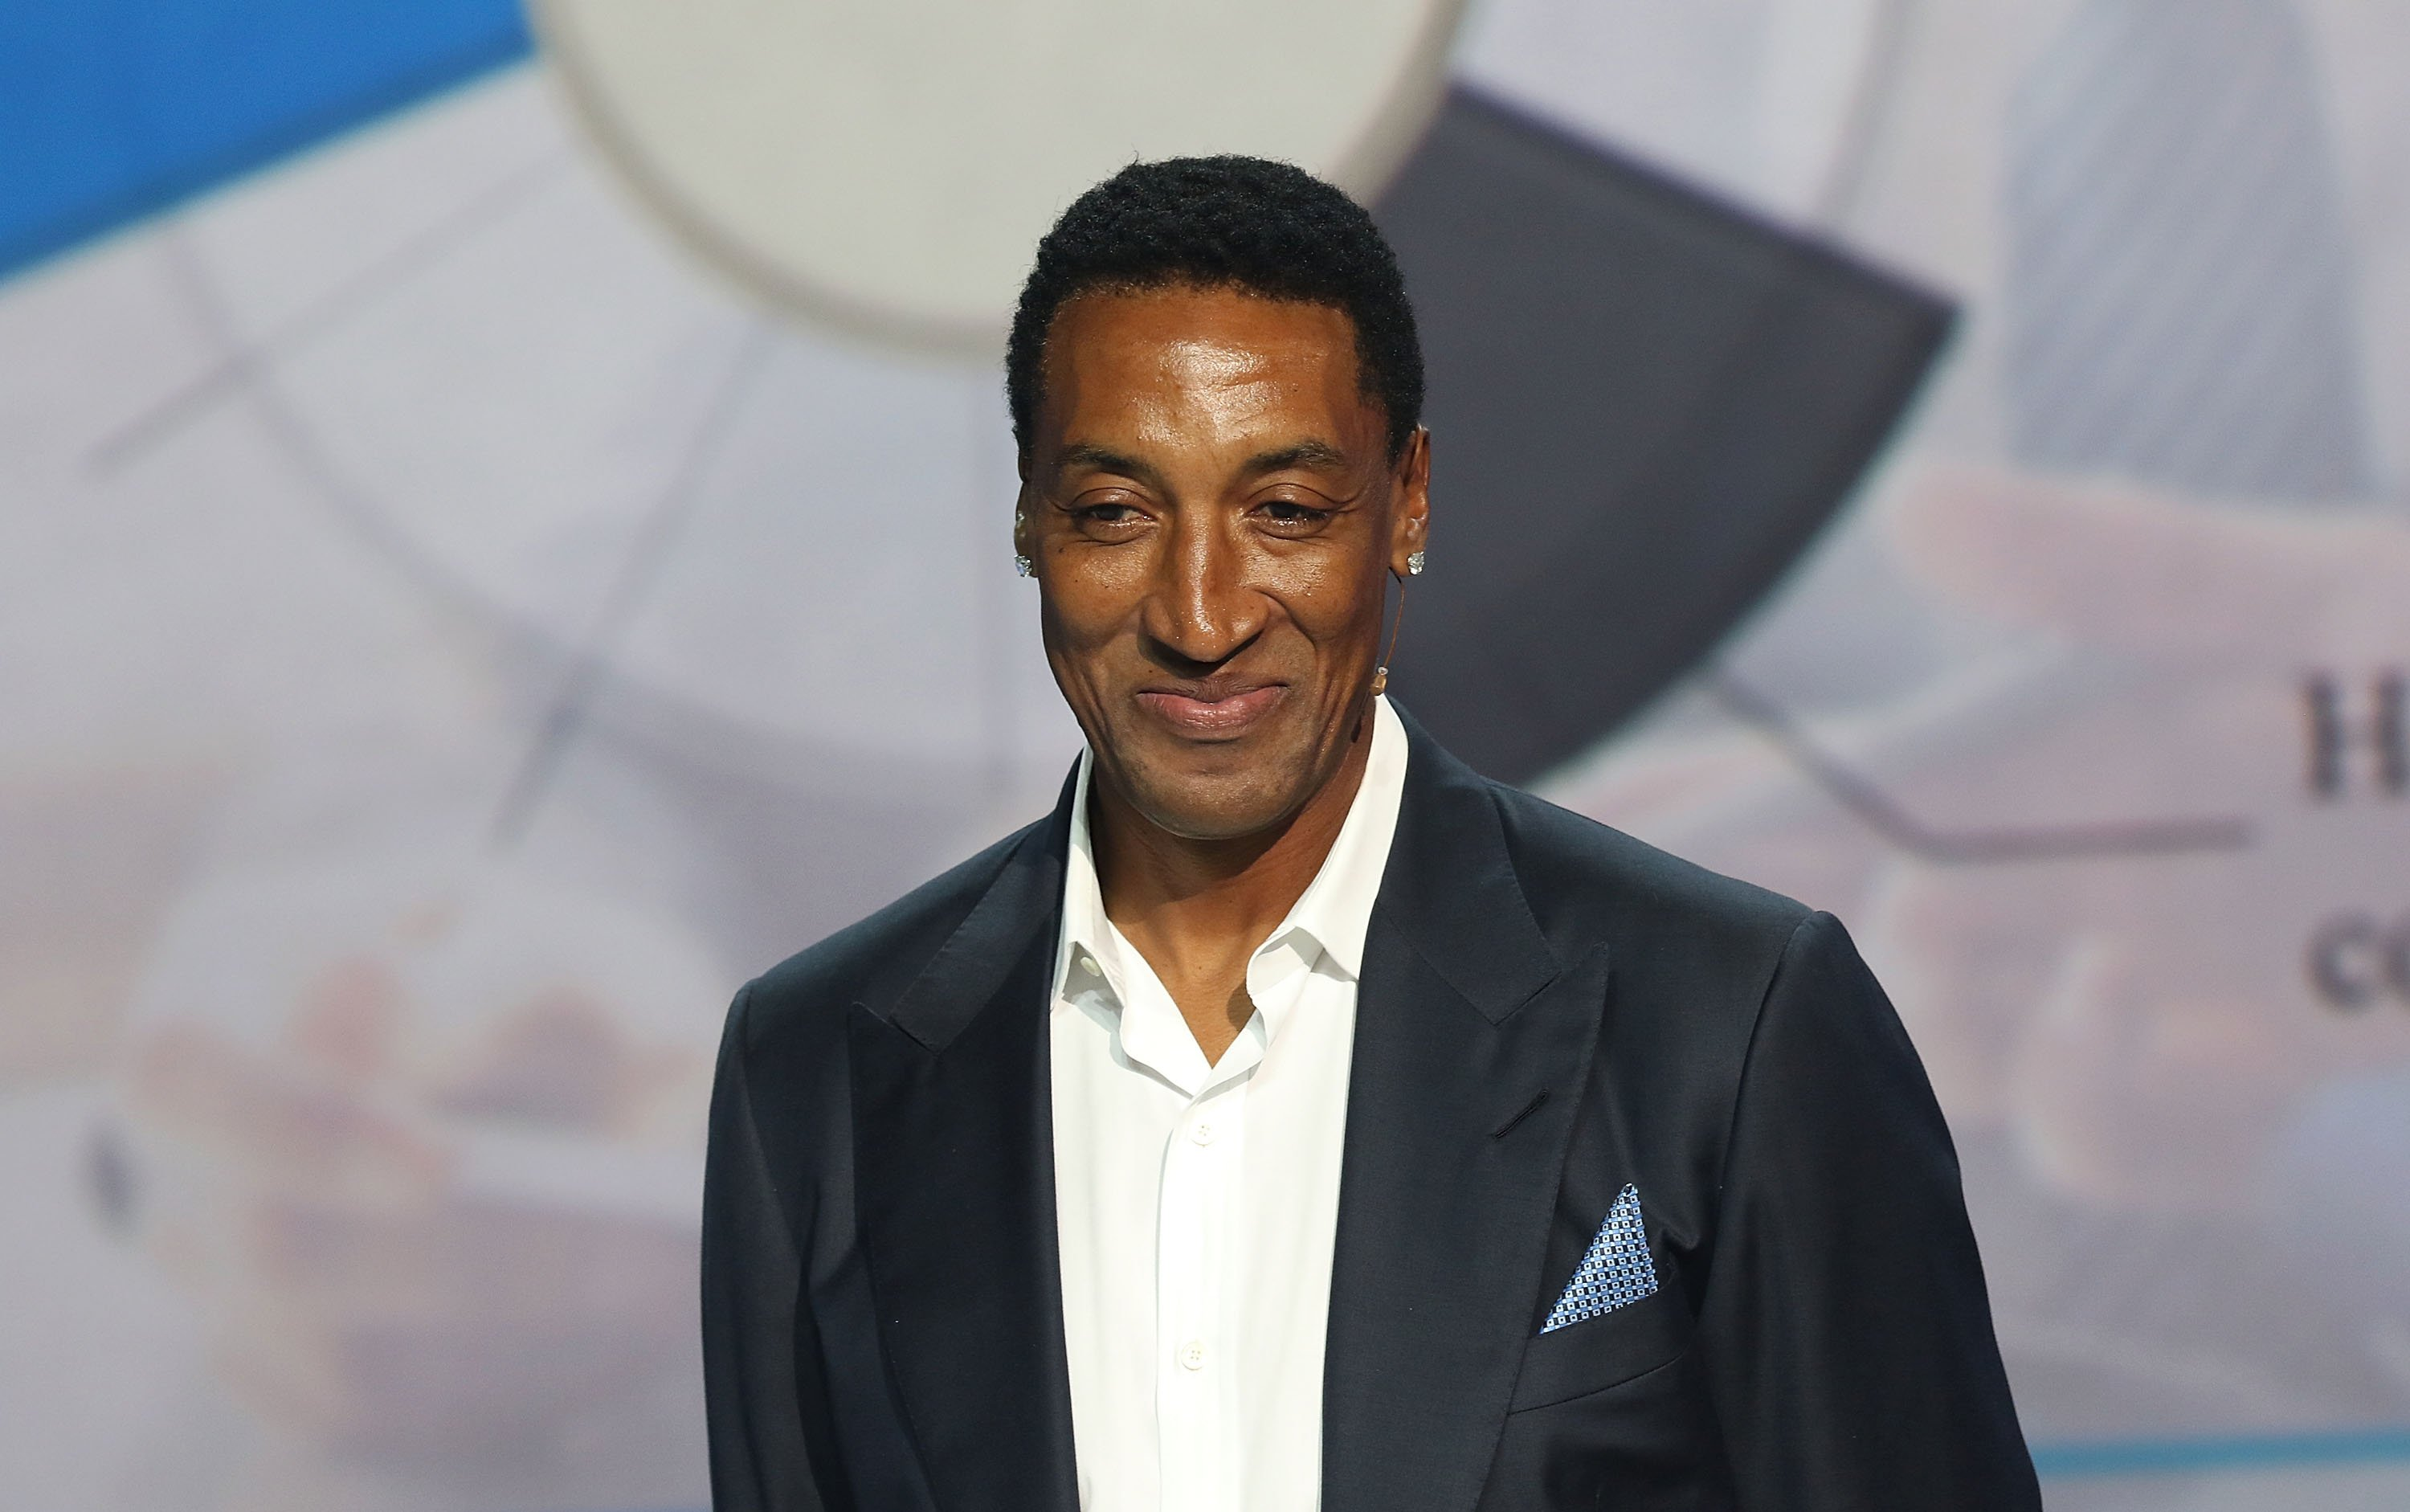 Image Credits: Getty Images / Aaron Davidson | Scottie Pippen Attends Market America Conference 2016 at American Airlines Arena on February 4, 2016 in Miami, Florida.